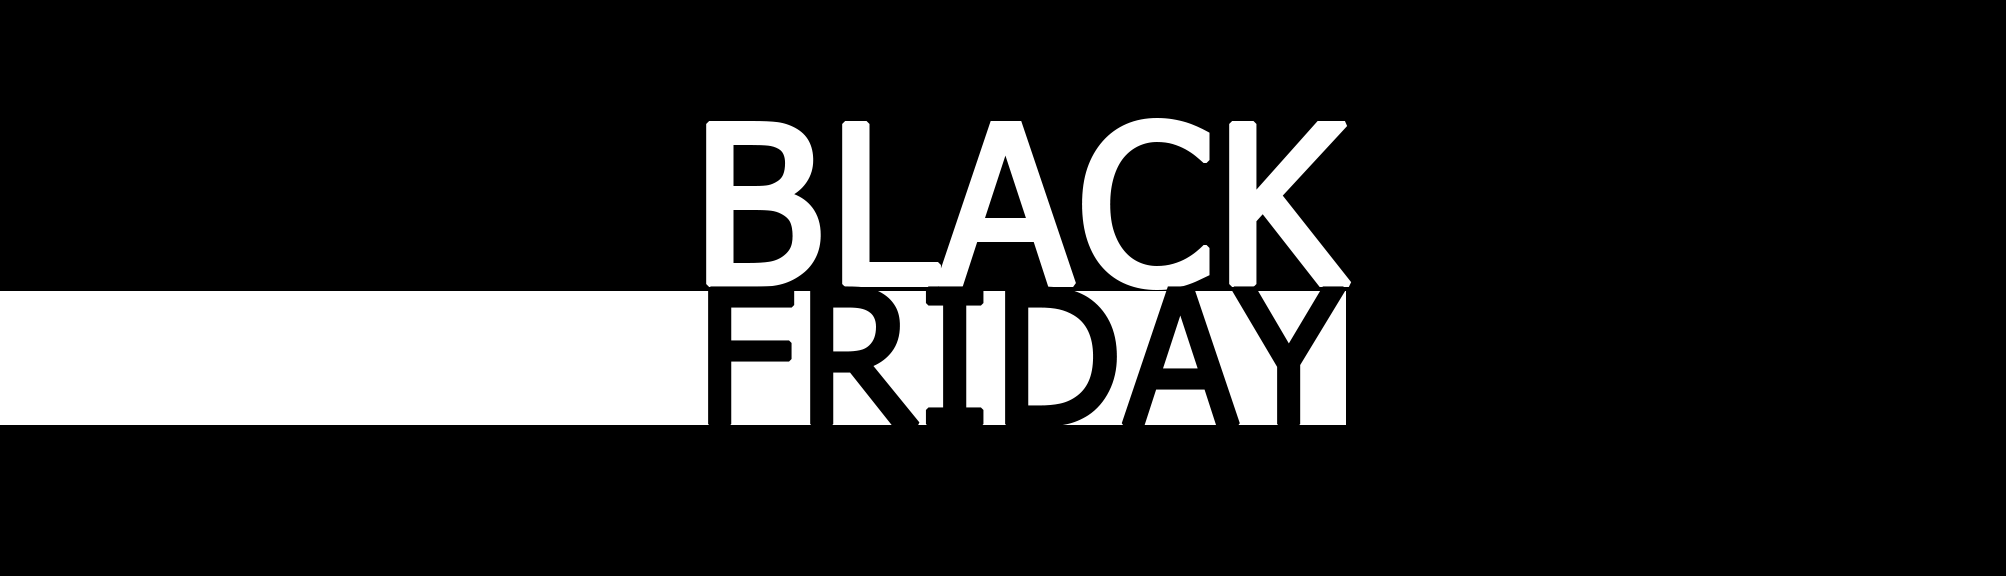 Black Friday 2019 - Norge